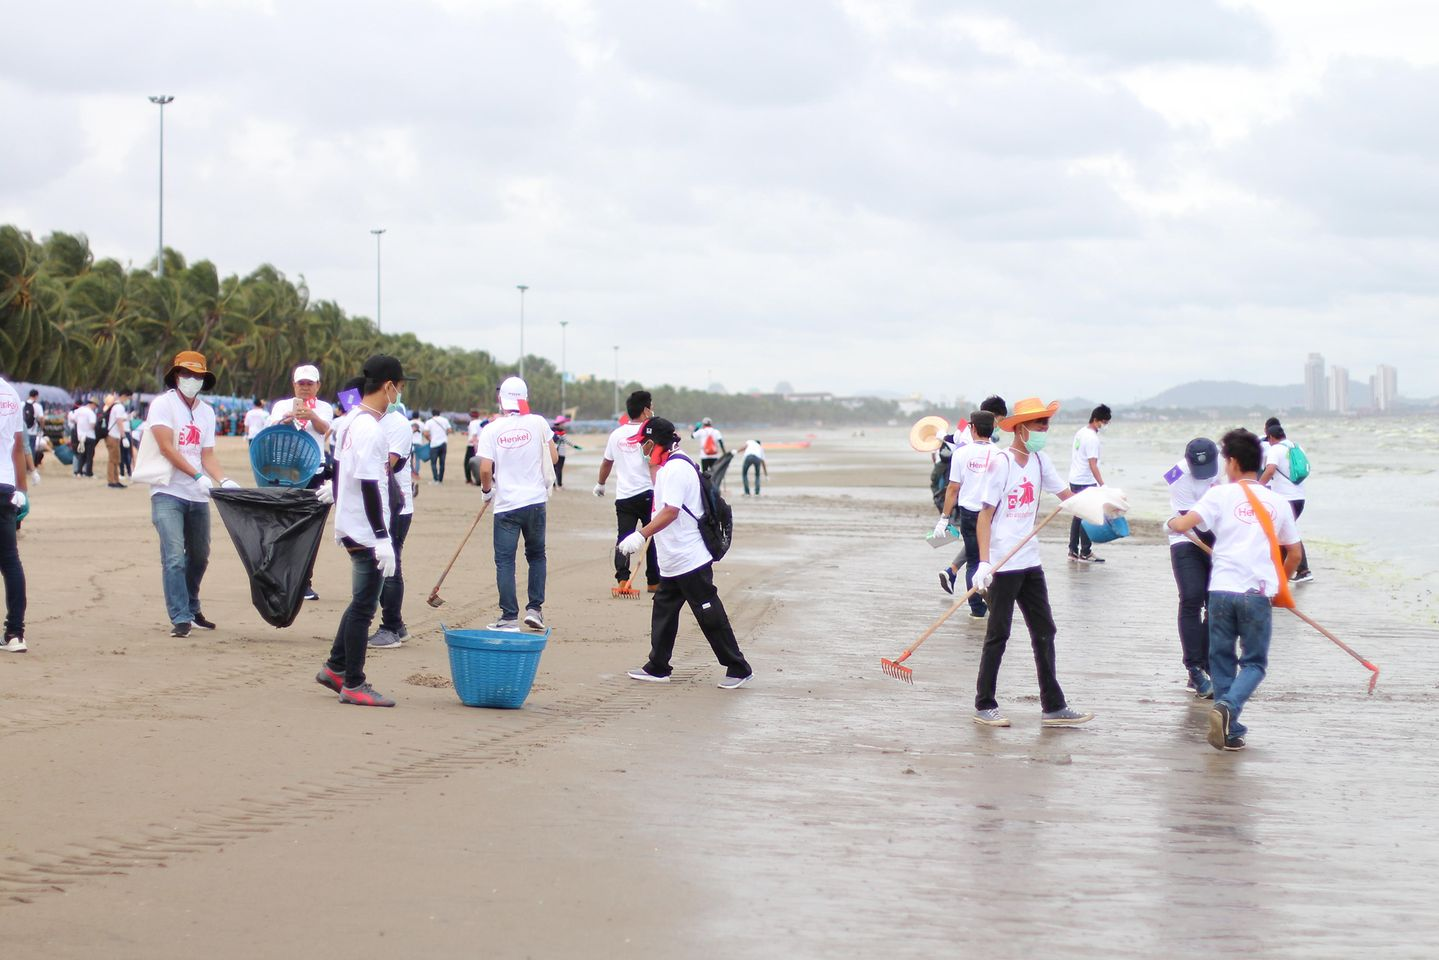 Henkel Thailand employees participate in the 'trashfighters' initiative to clean up local beaches.